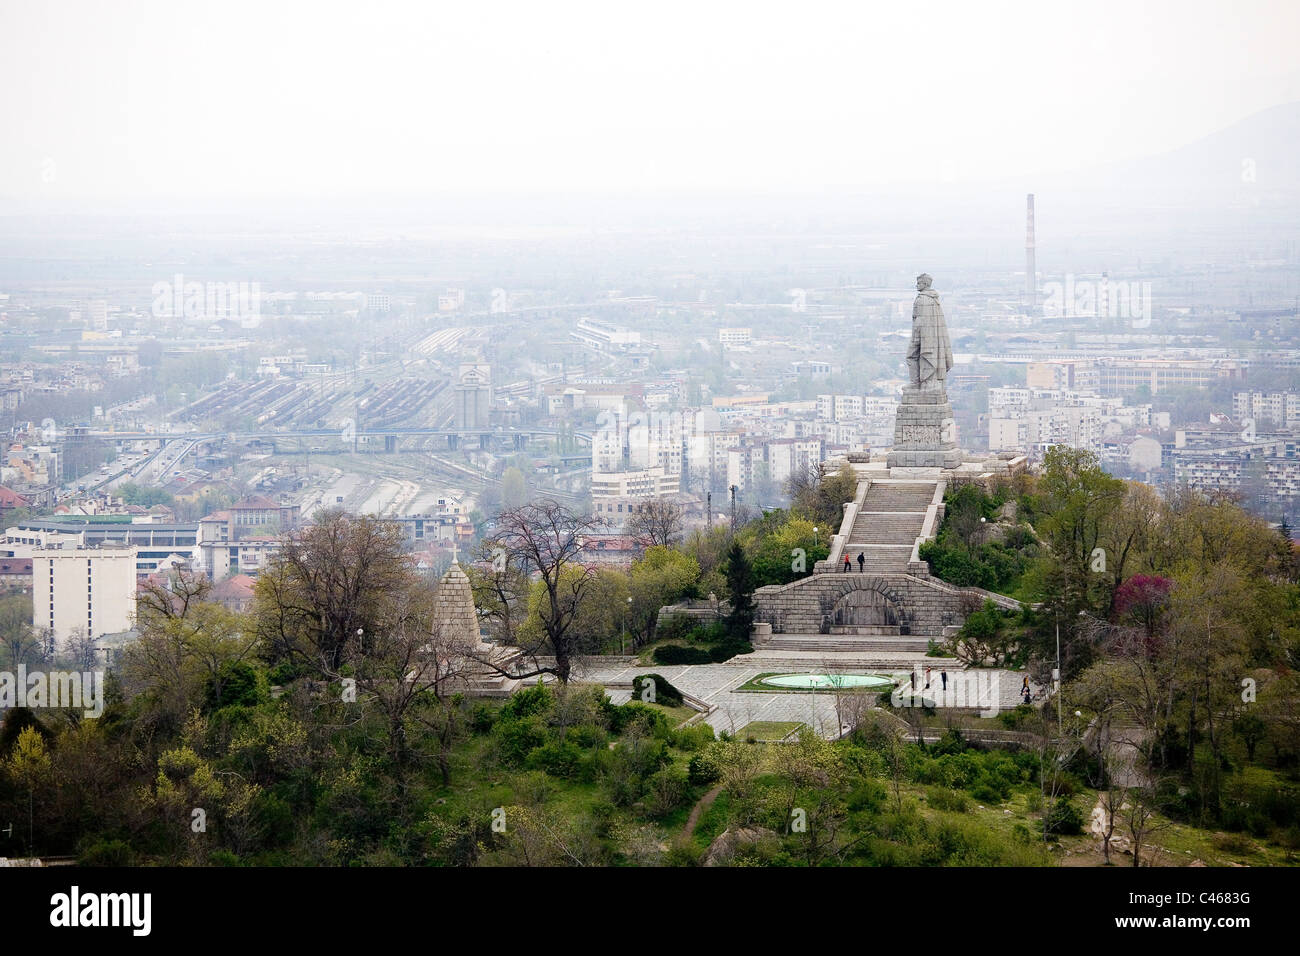 Aerial photograph of a World War Two monument near the city of Plovdiv - Stock Image